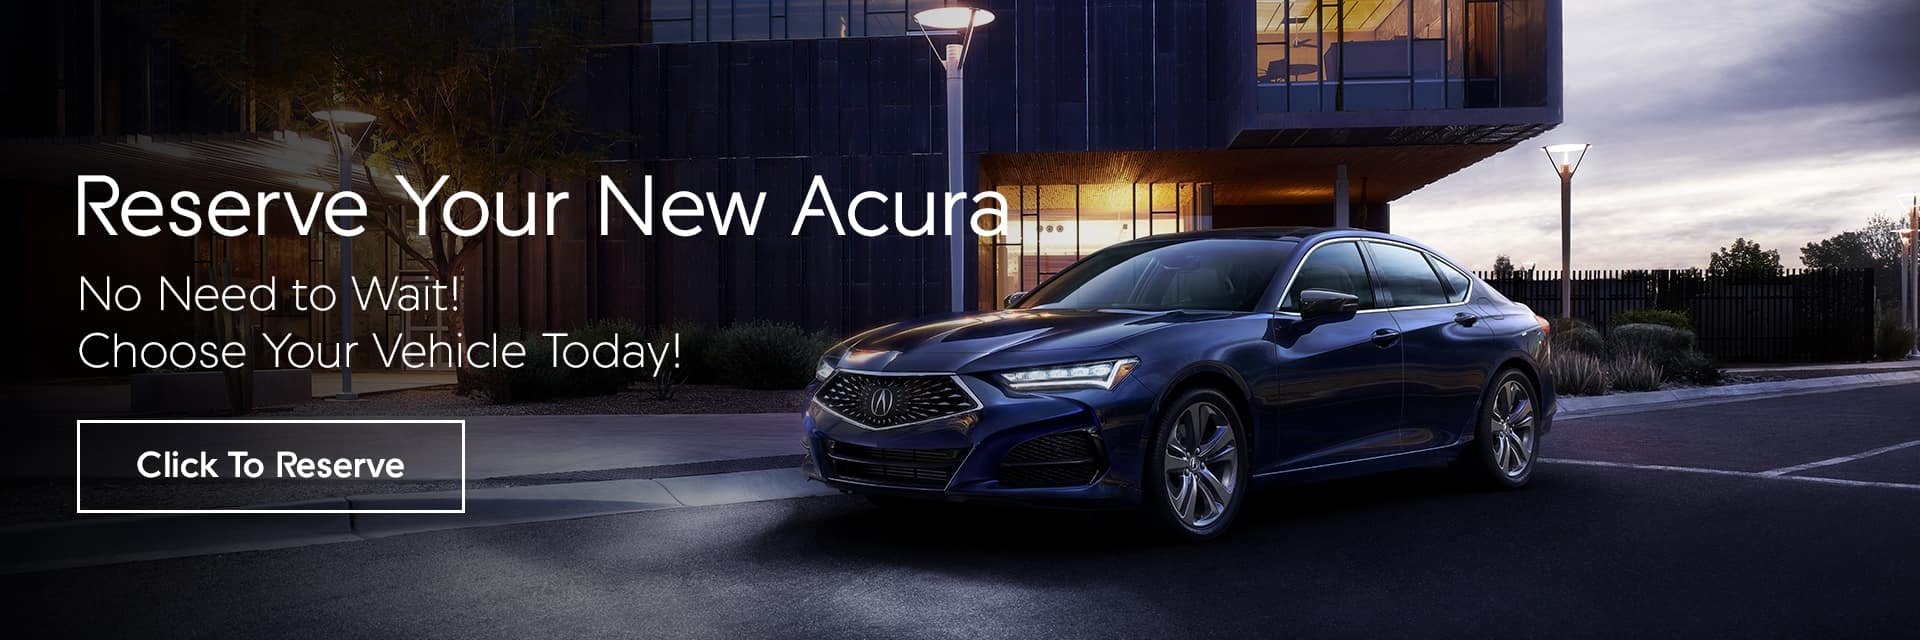 Reserve Your New Acura